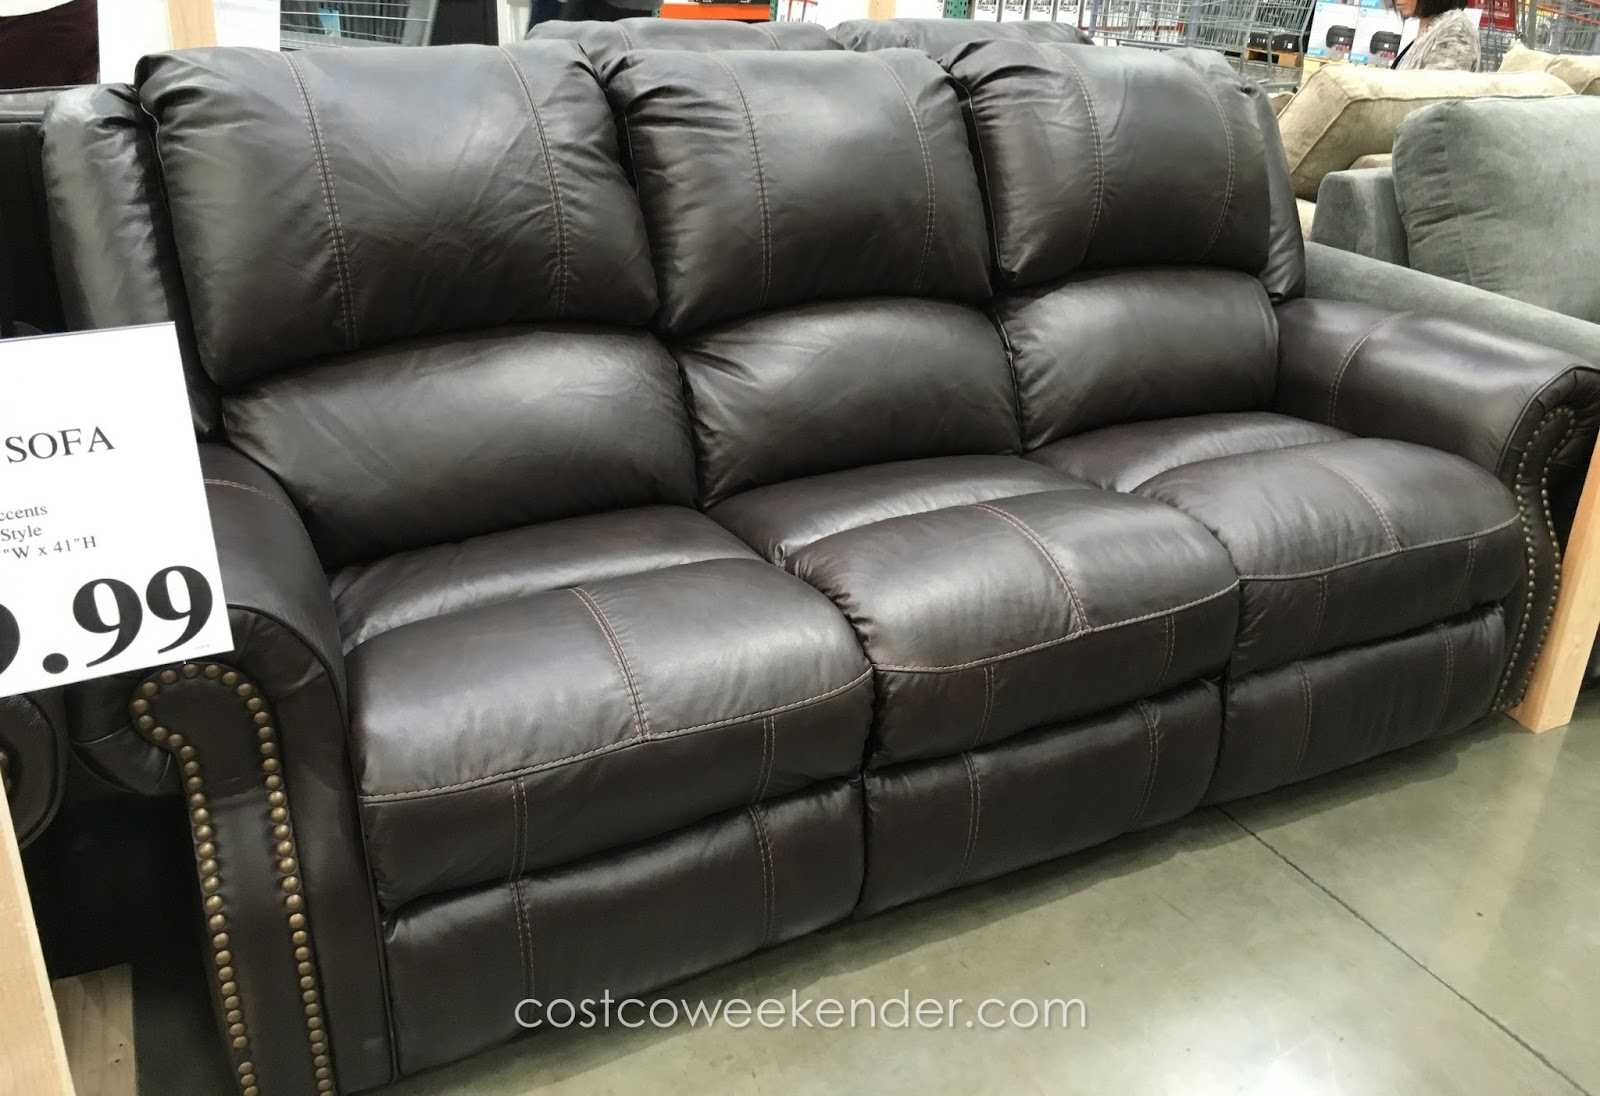 Berkline leather reclining sofa costco weekender Leather loveseat recliners